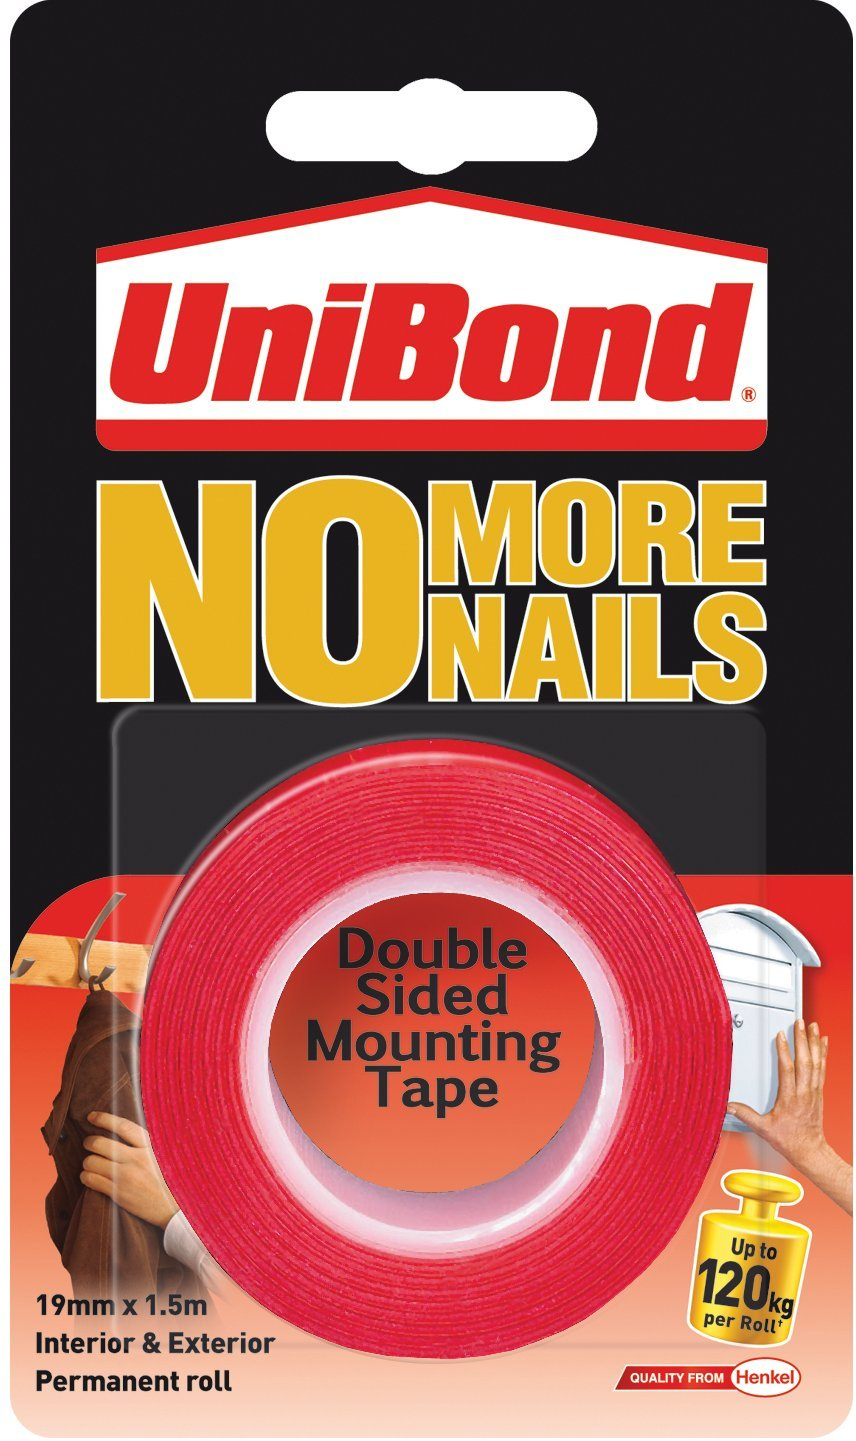 No More Nails Permanent Roll – 19 mm x 1.5 m